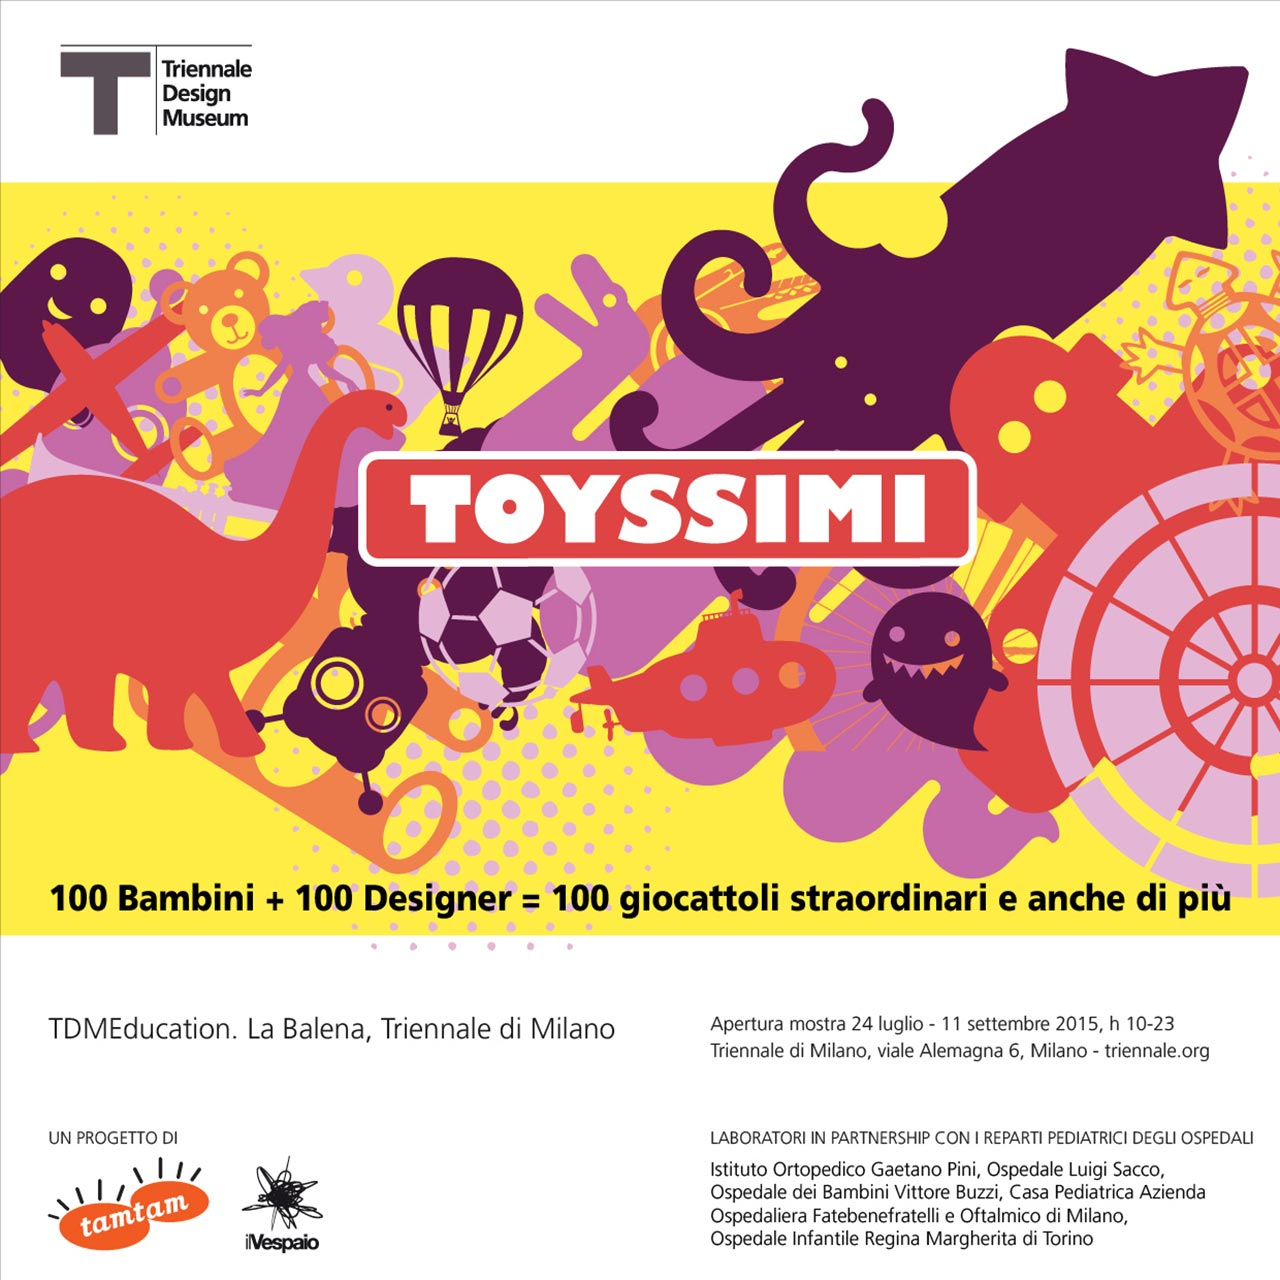 Toyssimi: a dream toyland at the Triennale di Milano